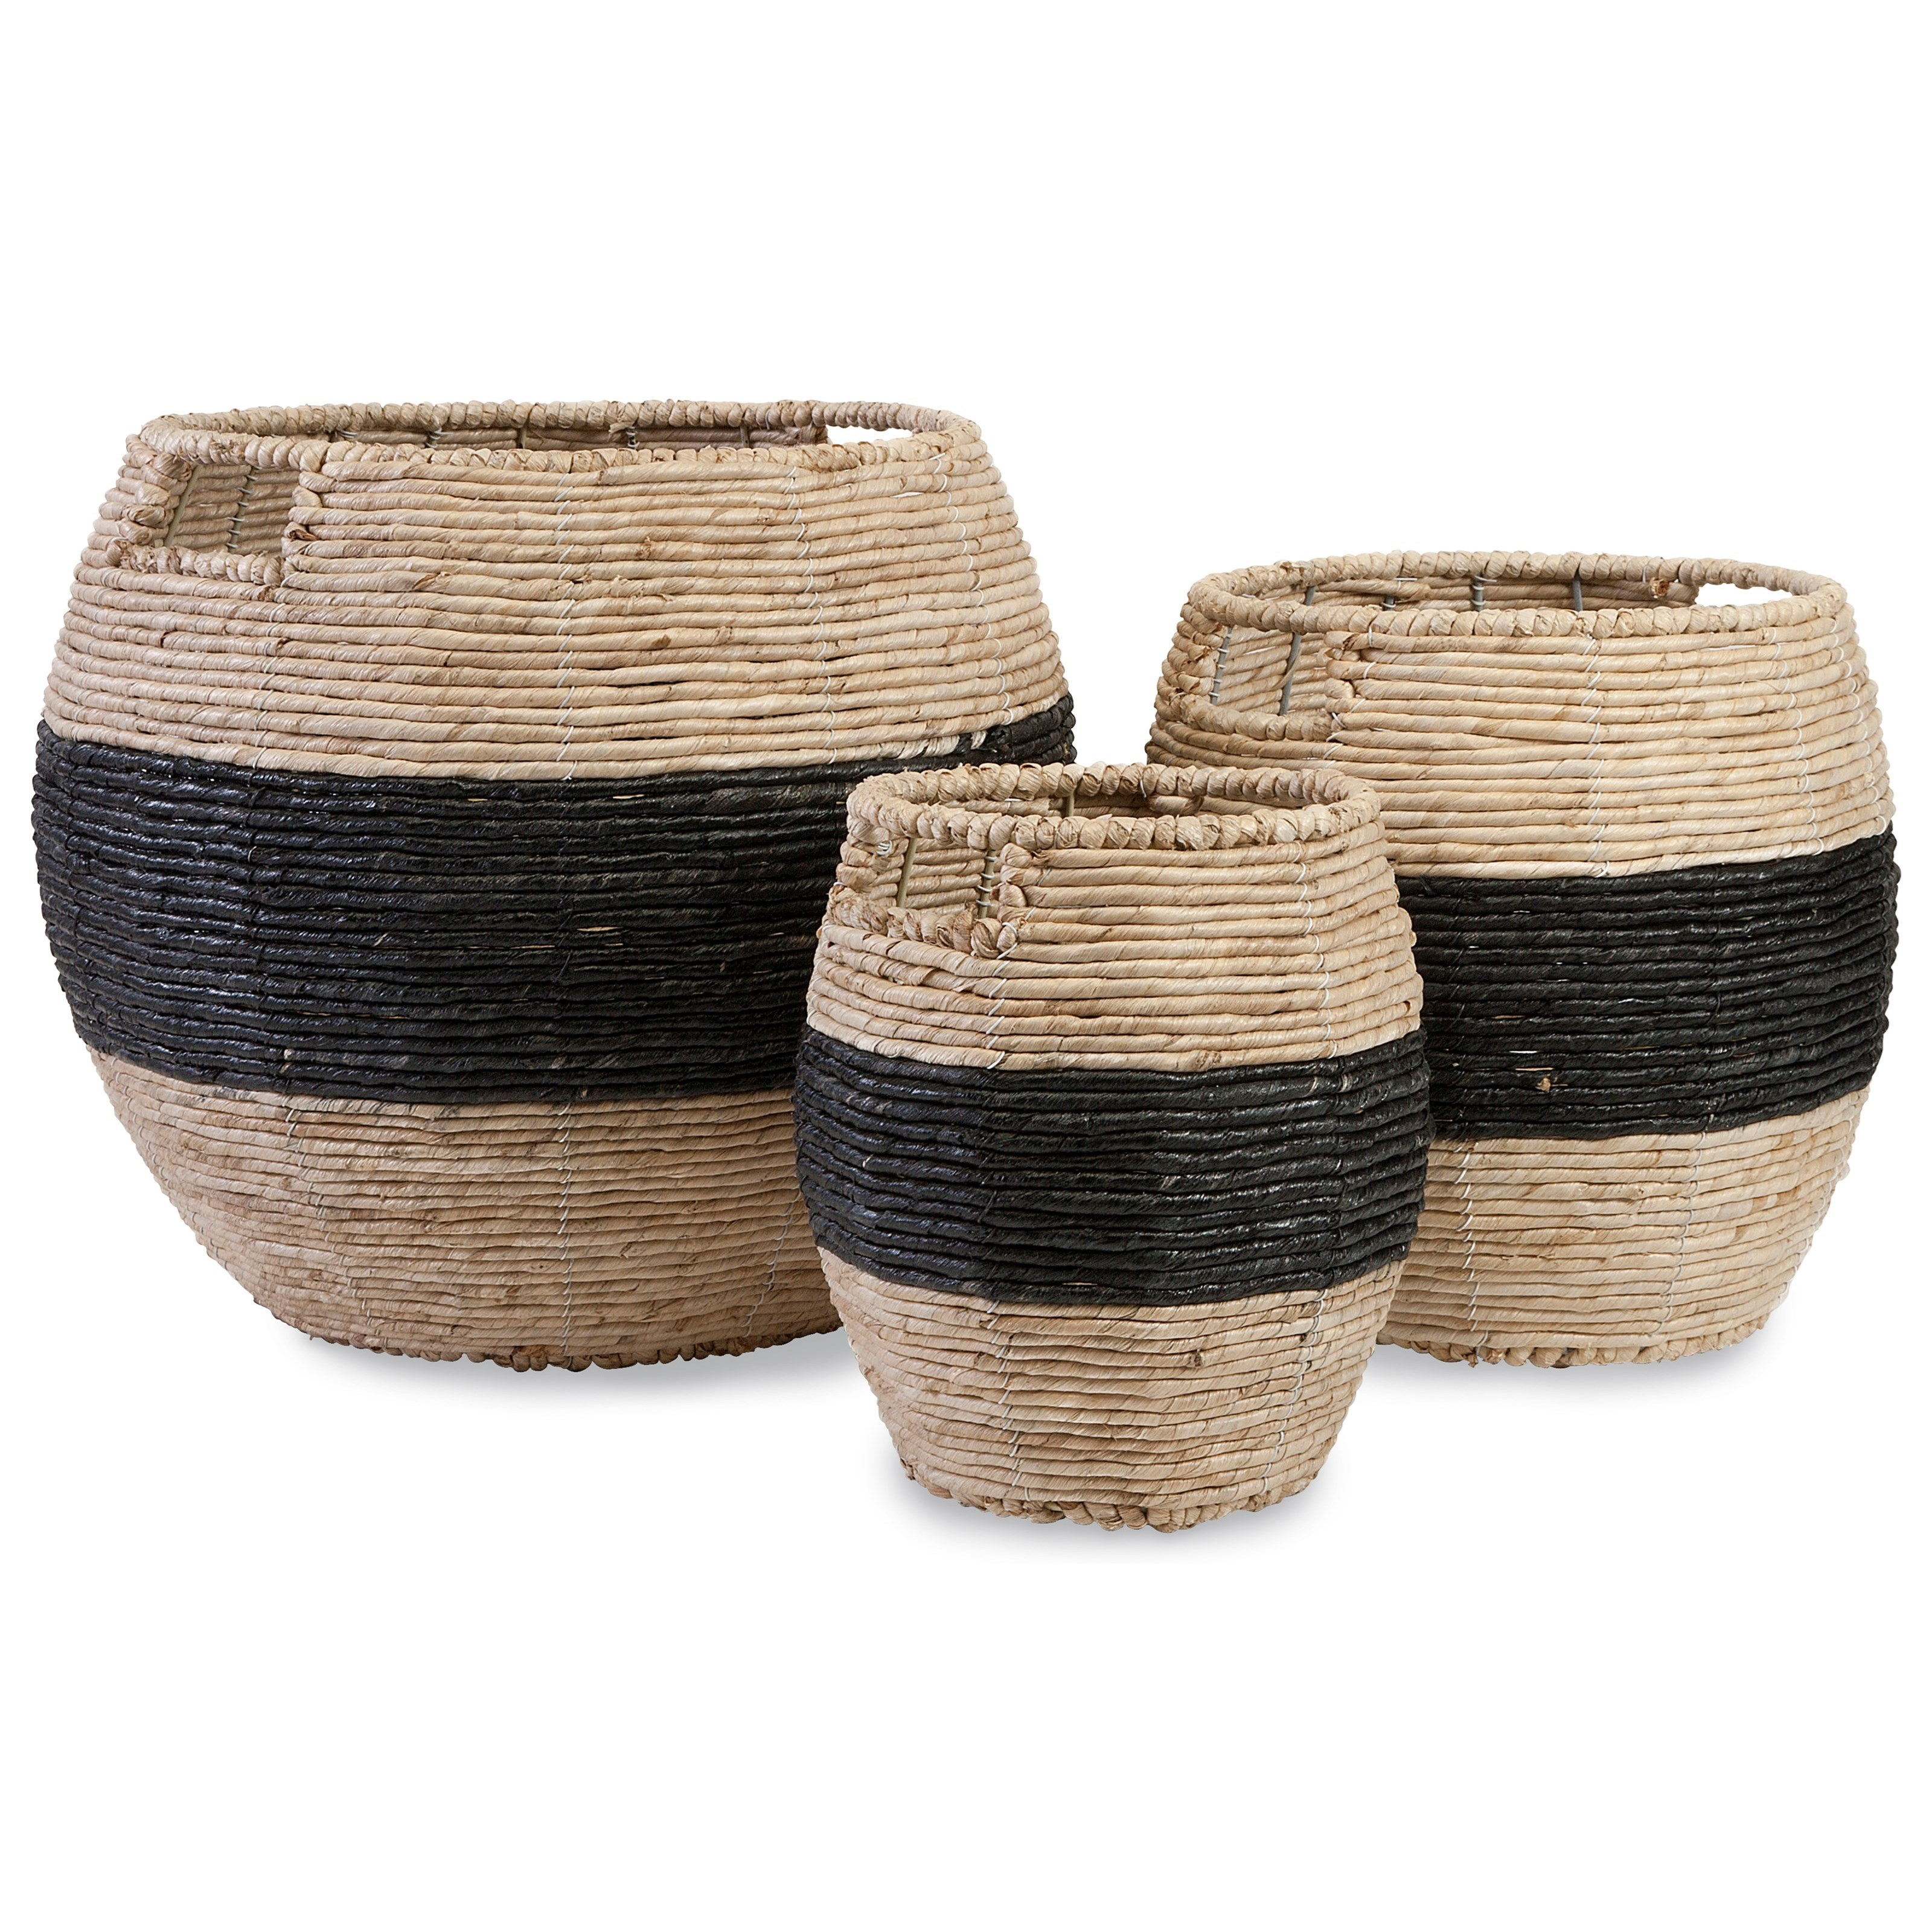 Baskets Dorran Woven Baskets - Set of 3 by IMAX Worldwide Home at Alison Craig Home Furnishings